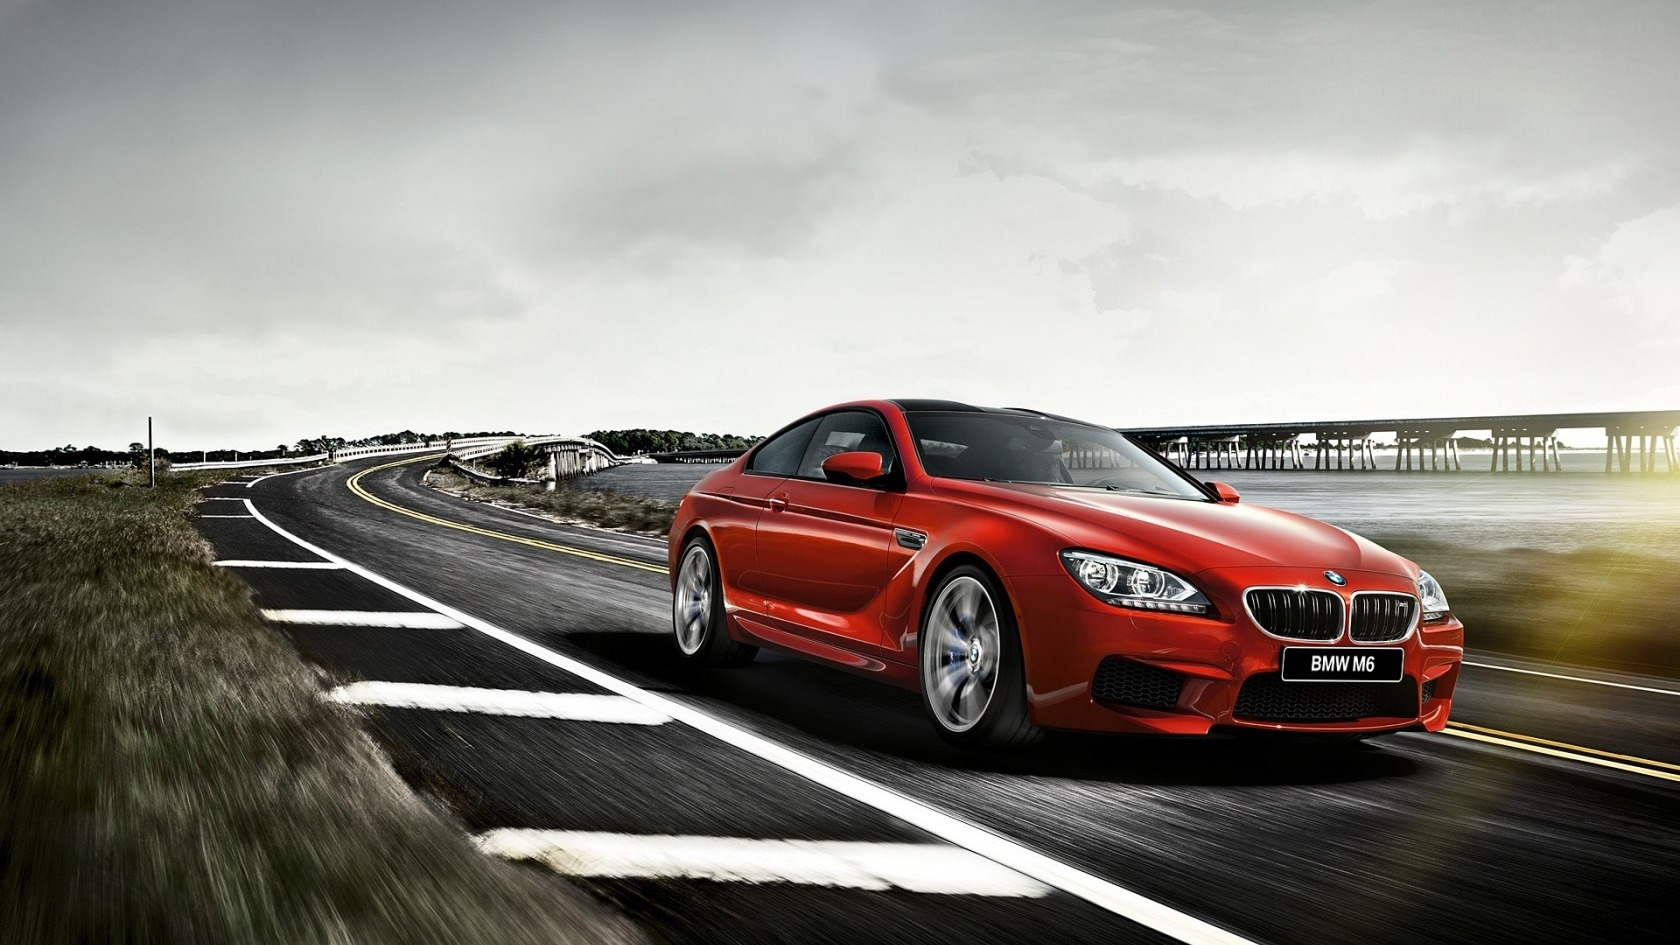 Red Bmw M6 F13 Coupe On Road Gorgeous Car